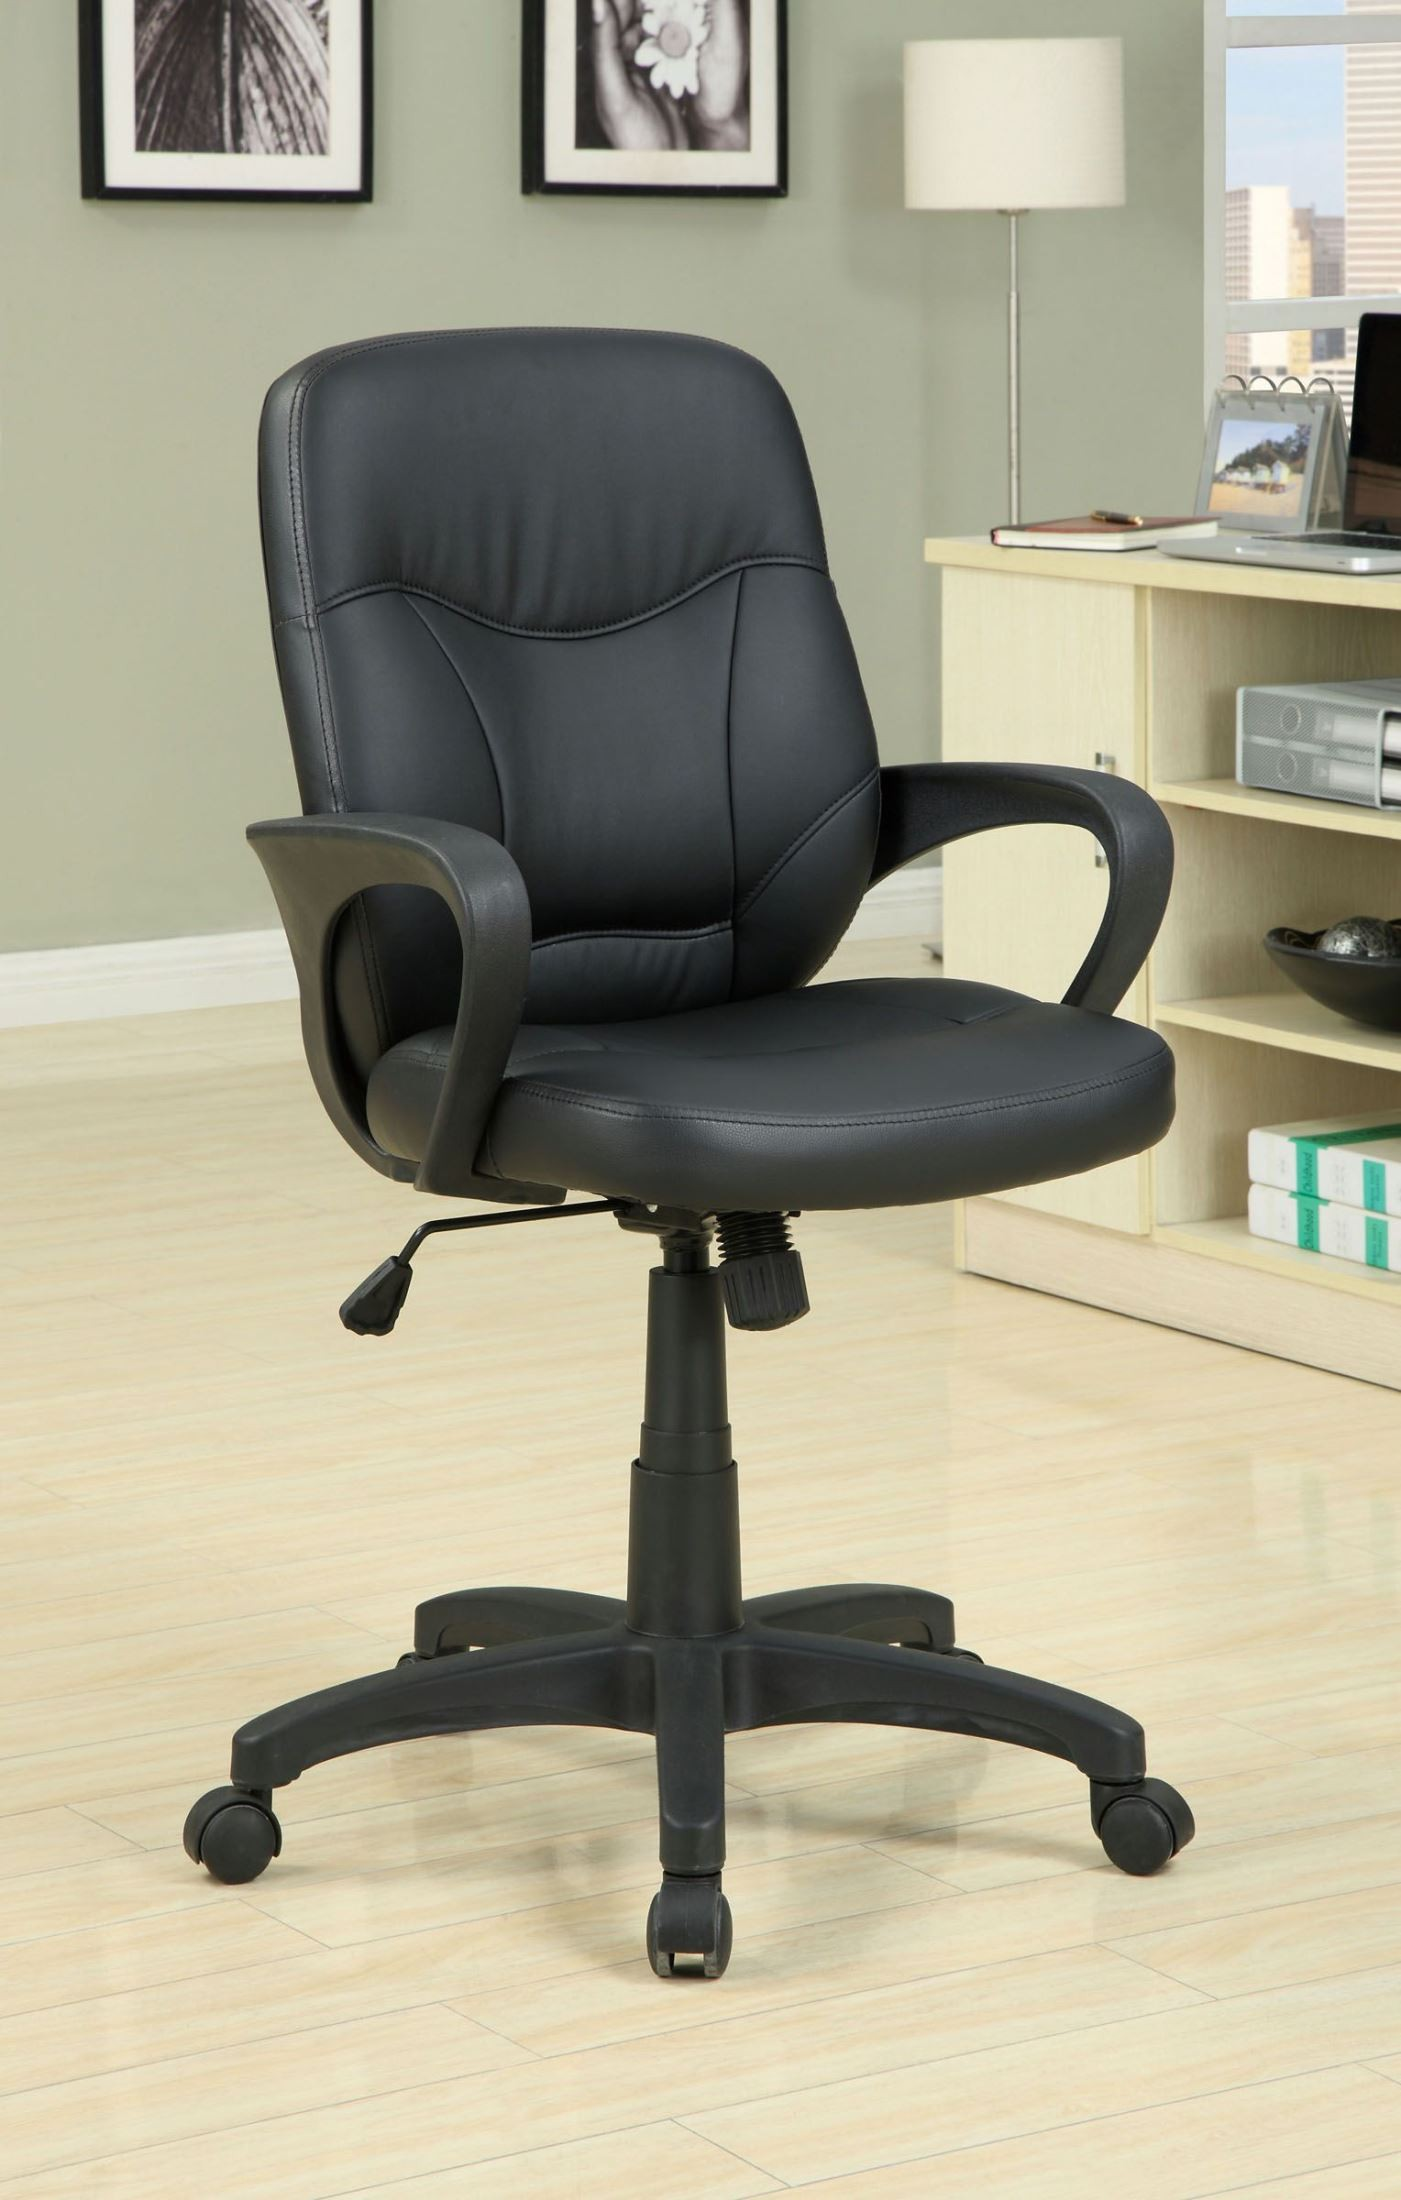 Stratford Adjustable Height Office Chair From Furniture Of America CM FC602